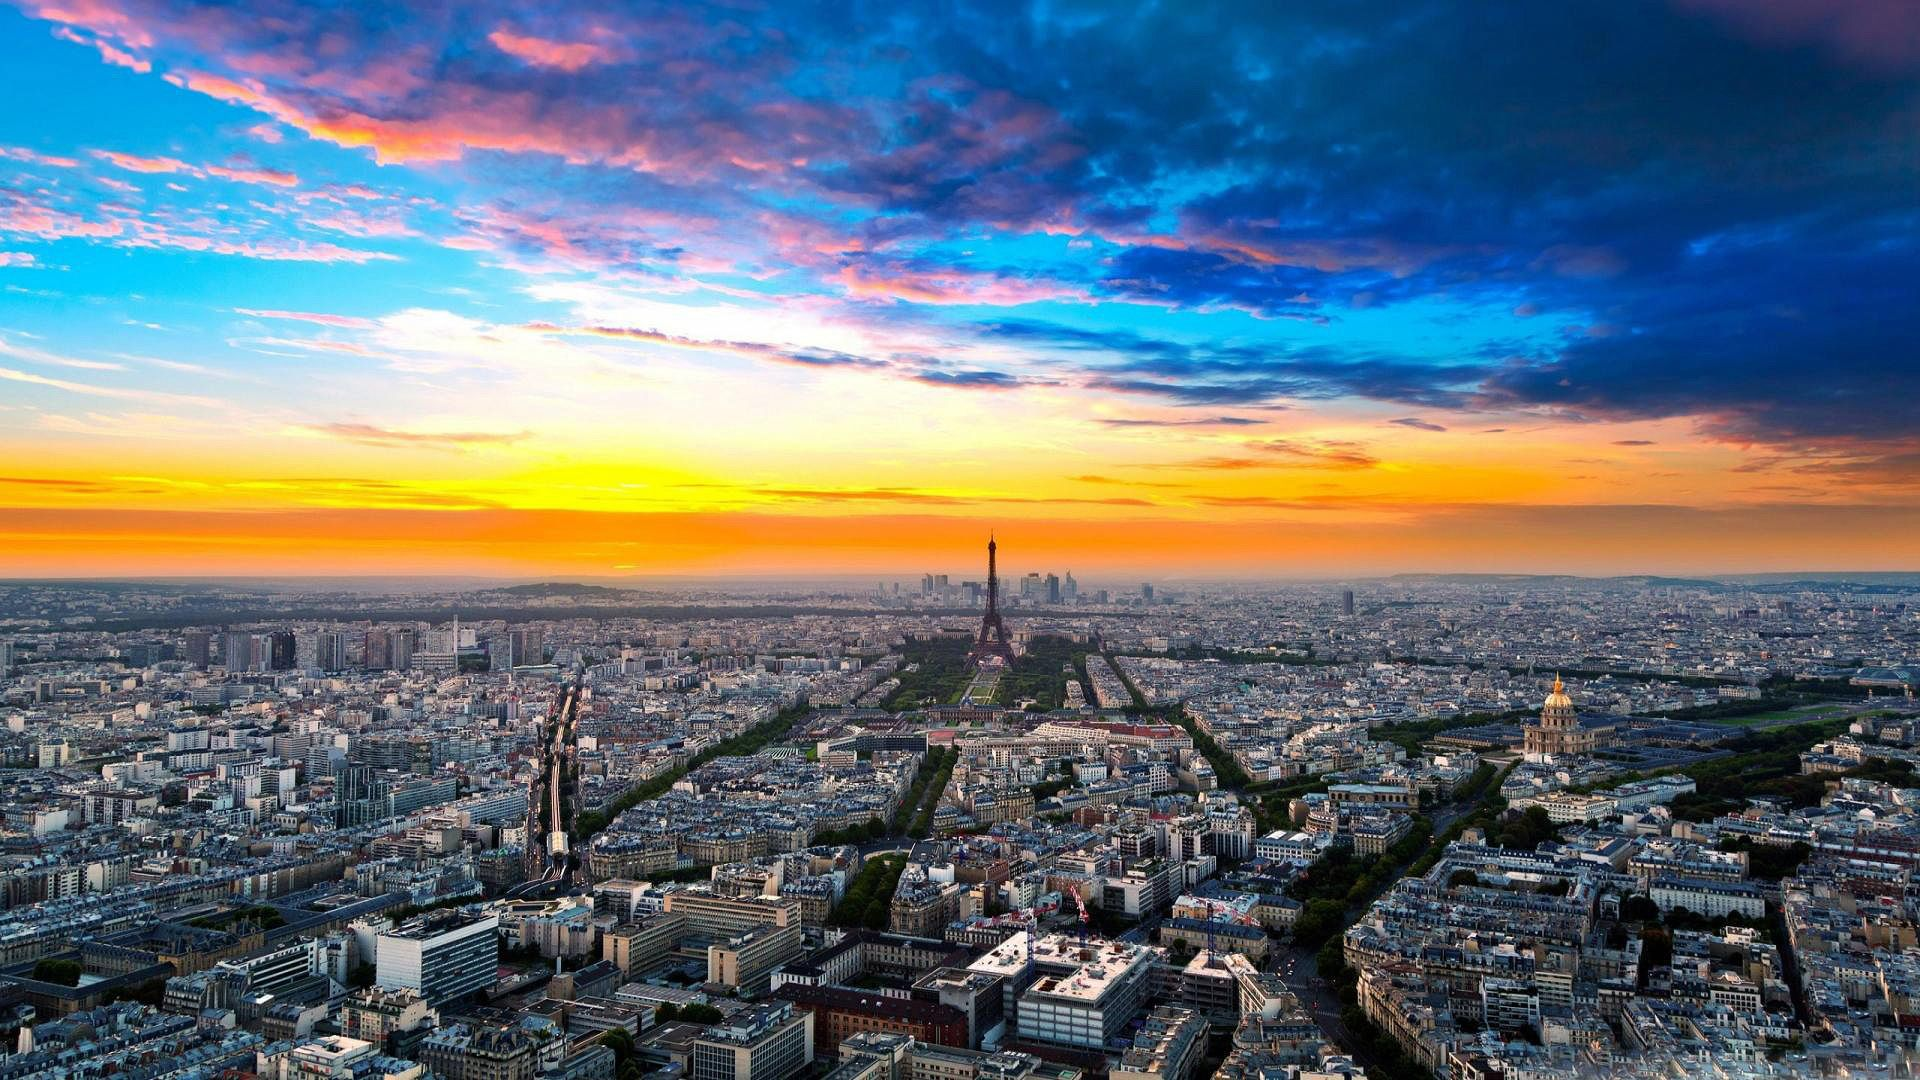 find out: paris night sky wallpaper on http://hdpicorner/paris